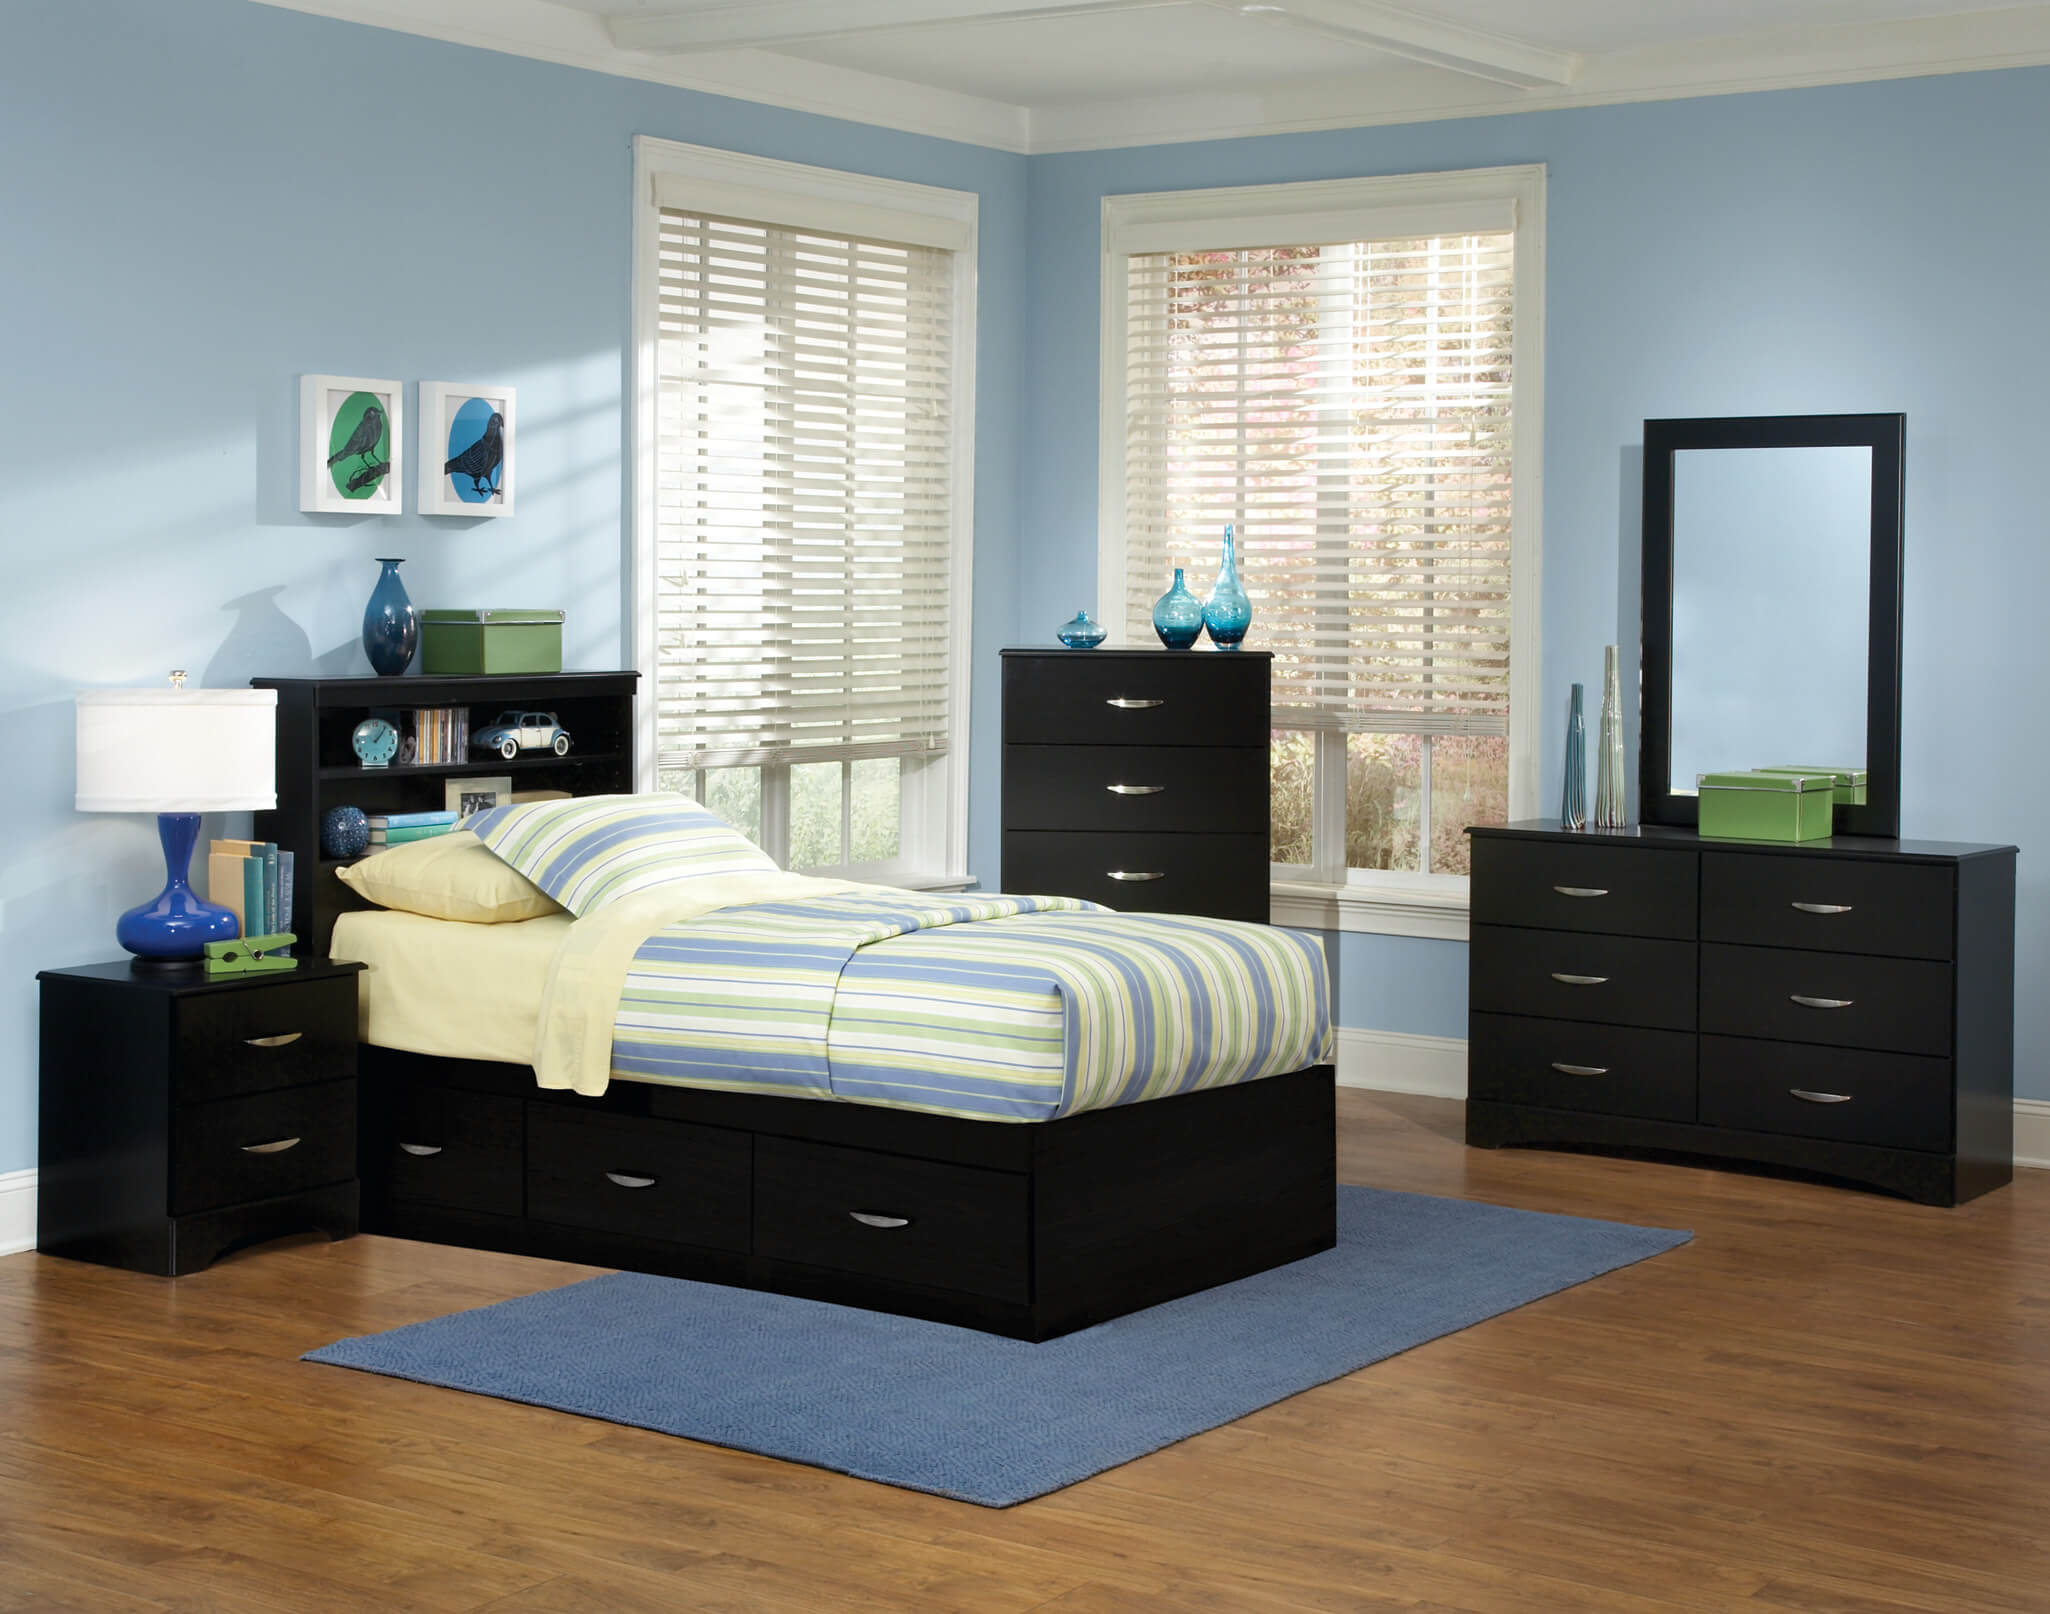 mmfurniture bed by buy bedroom from flexsteel set aberdeen room com